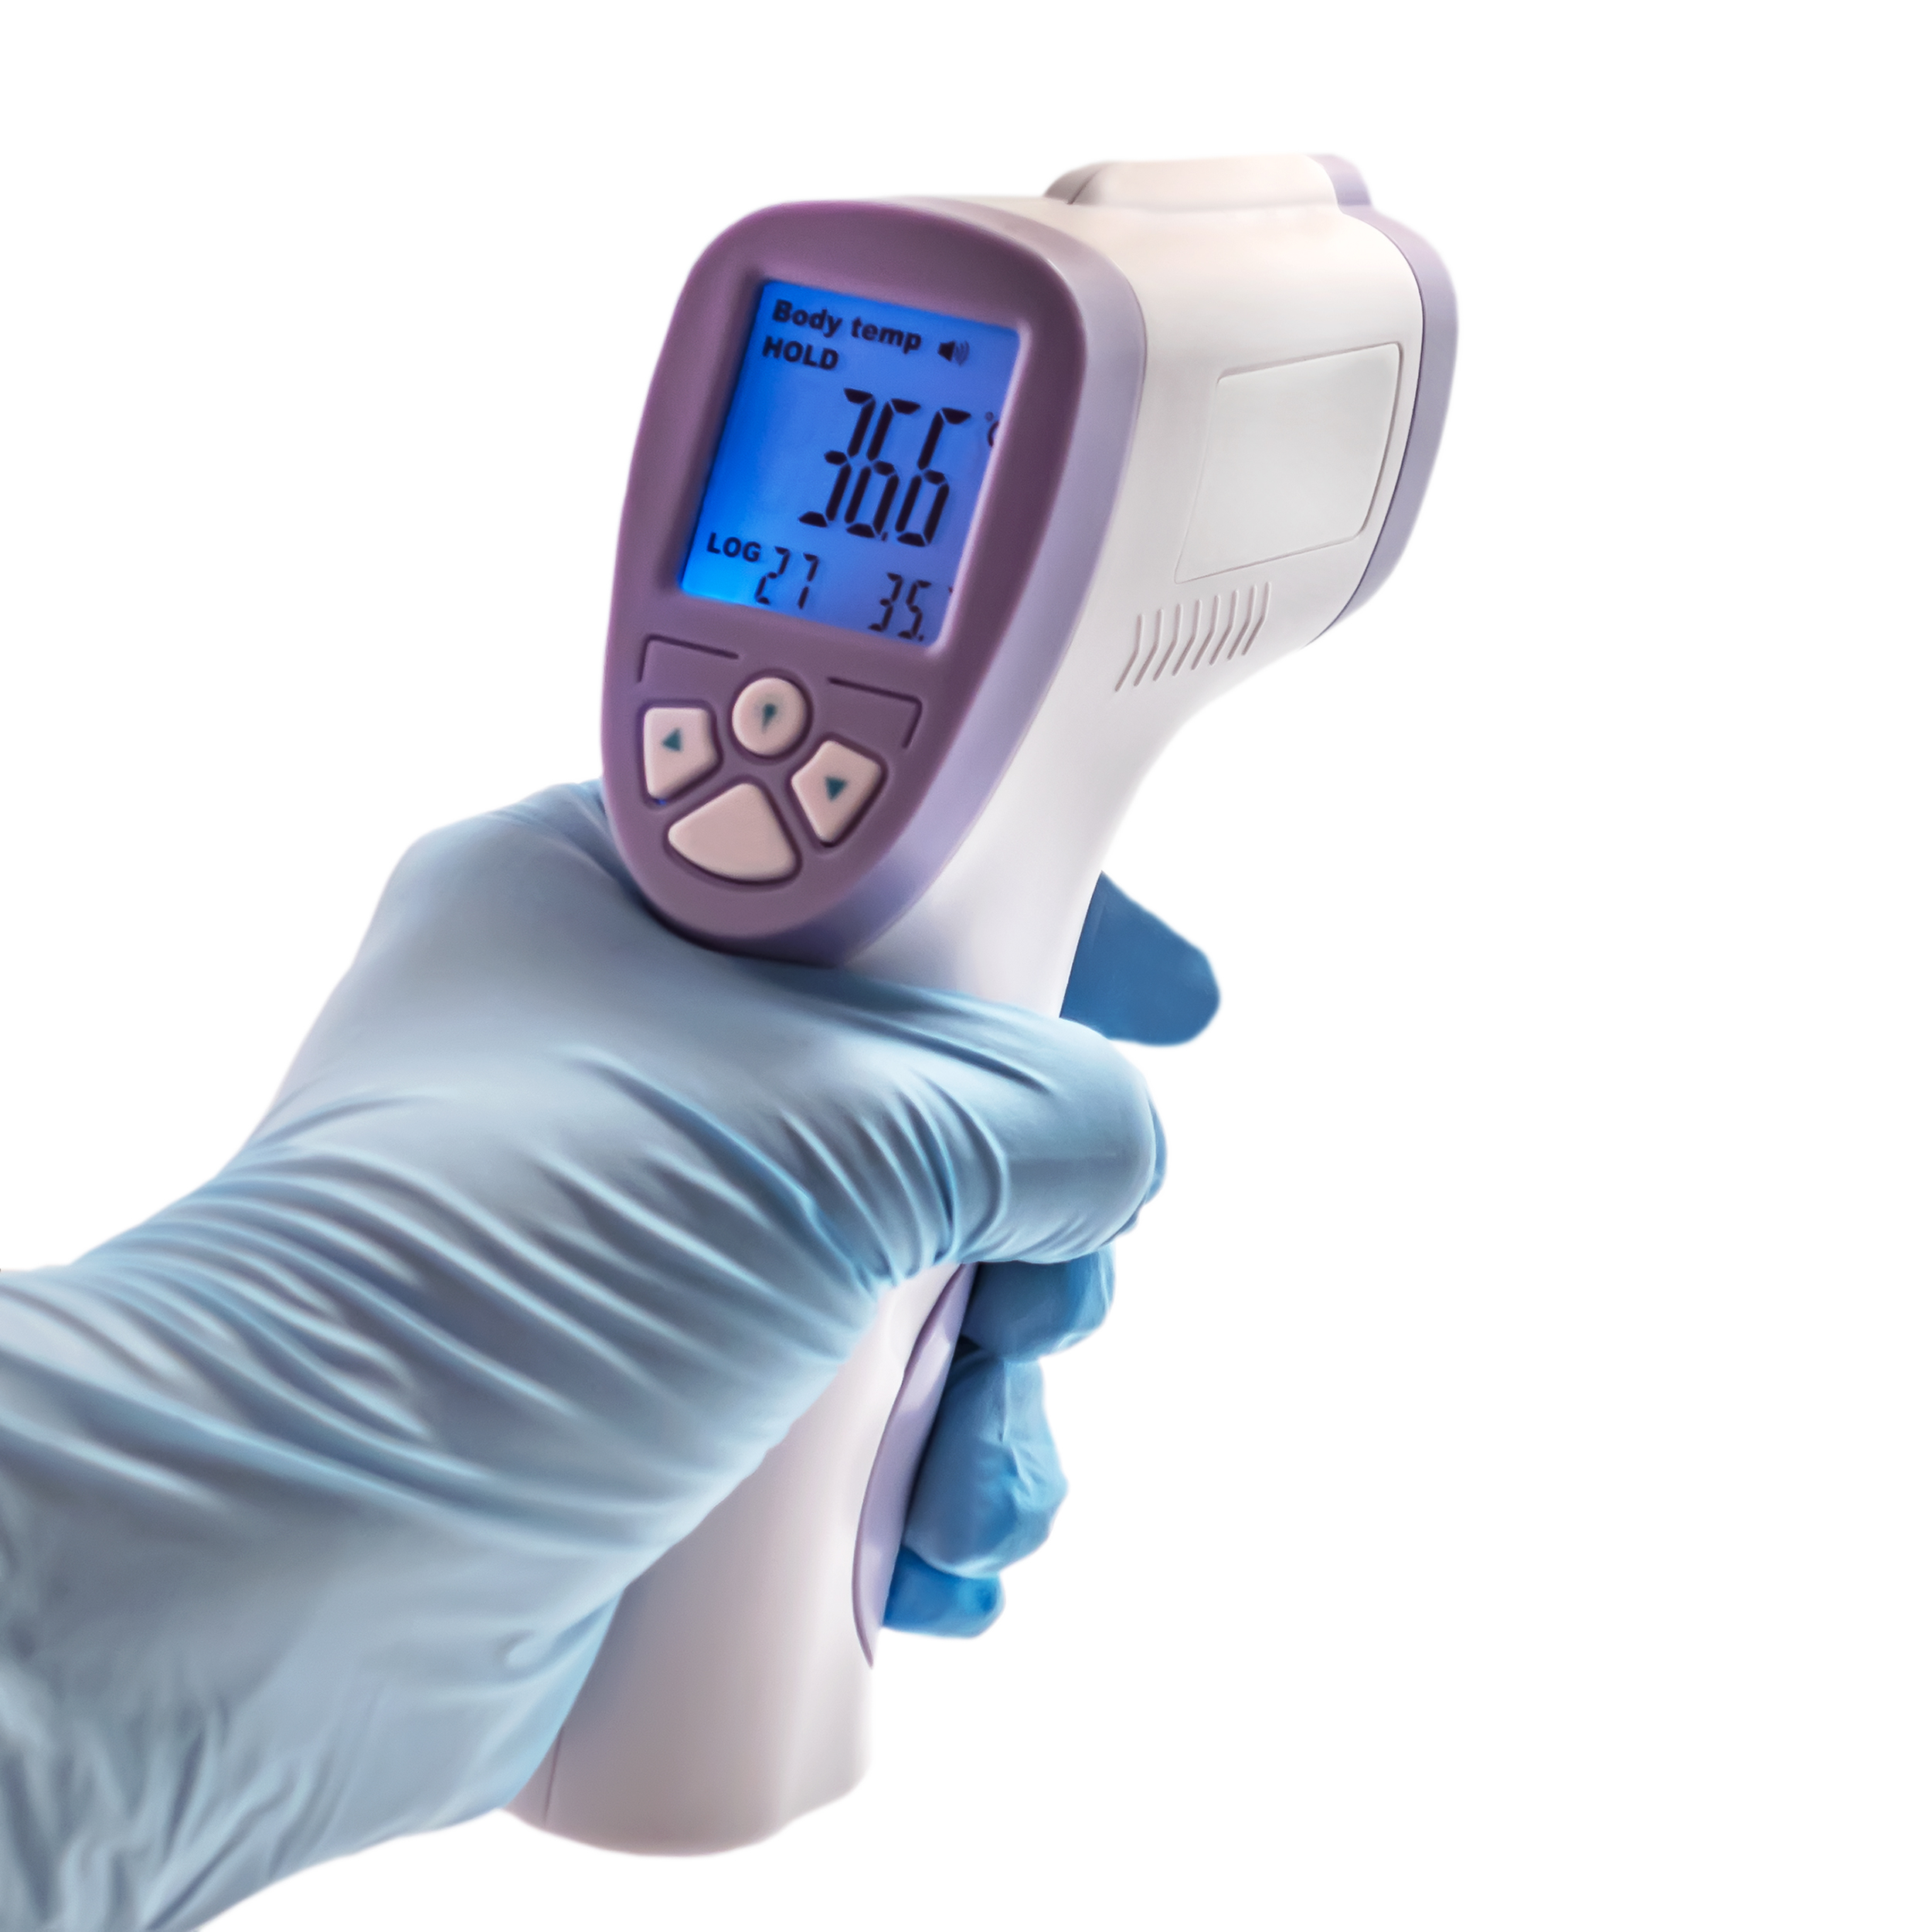 infrared thermometer used